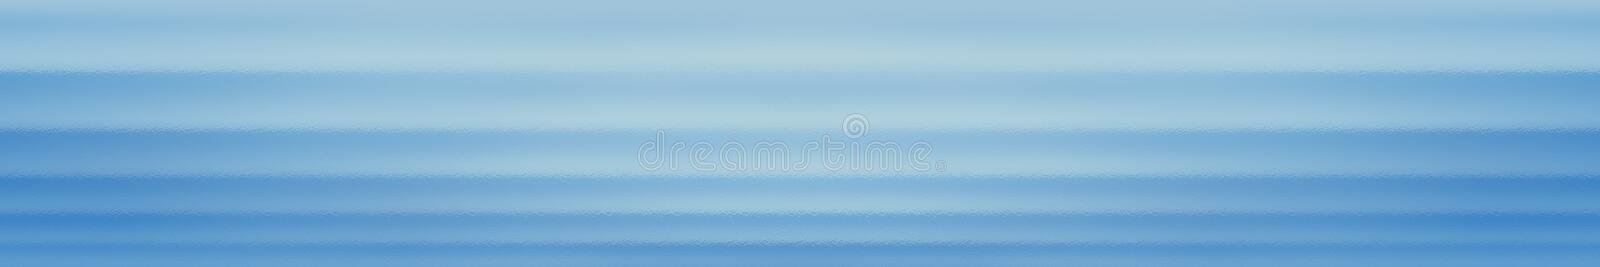 Blue web site header or footer background. Abstract design template stock illustration